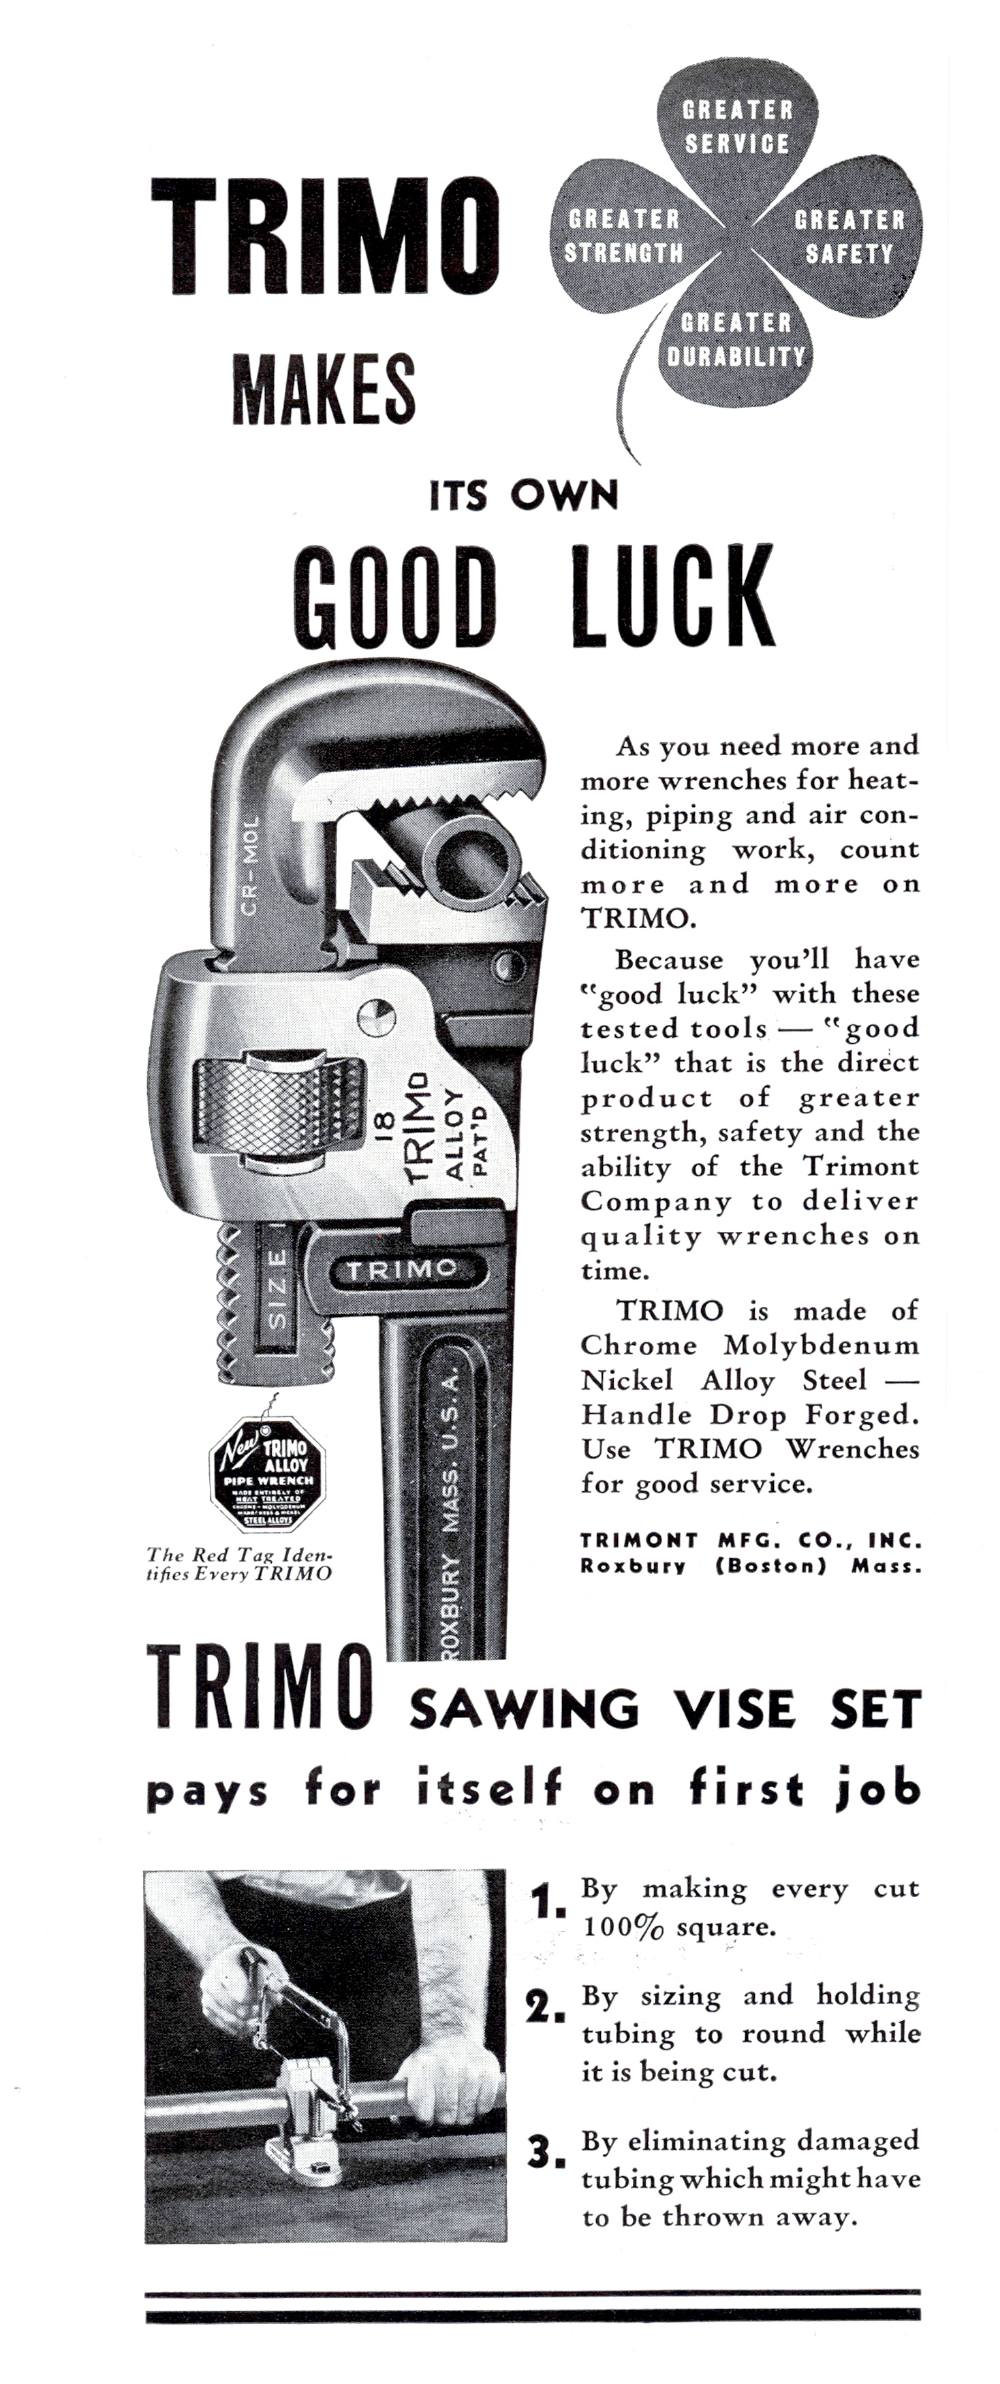 The Trimont Mfg. Co., Inc. ad from the September 1936